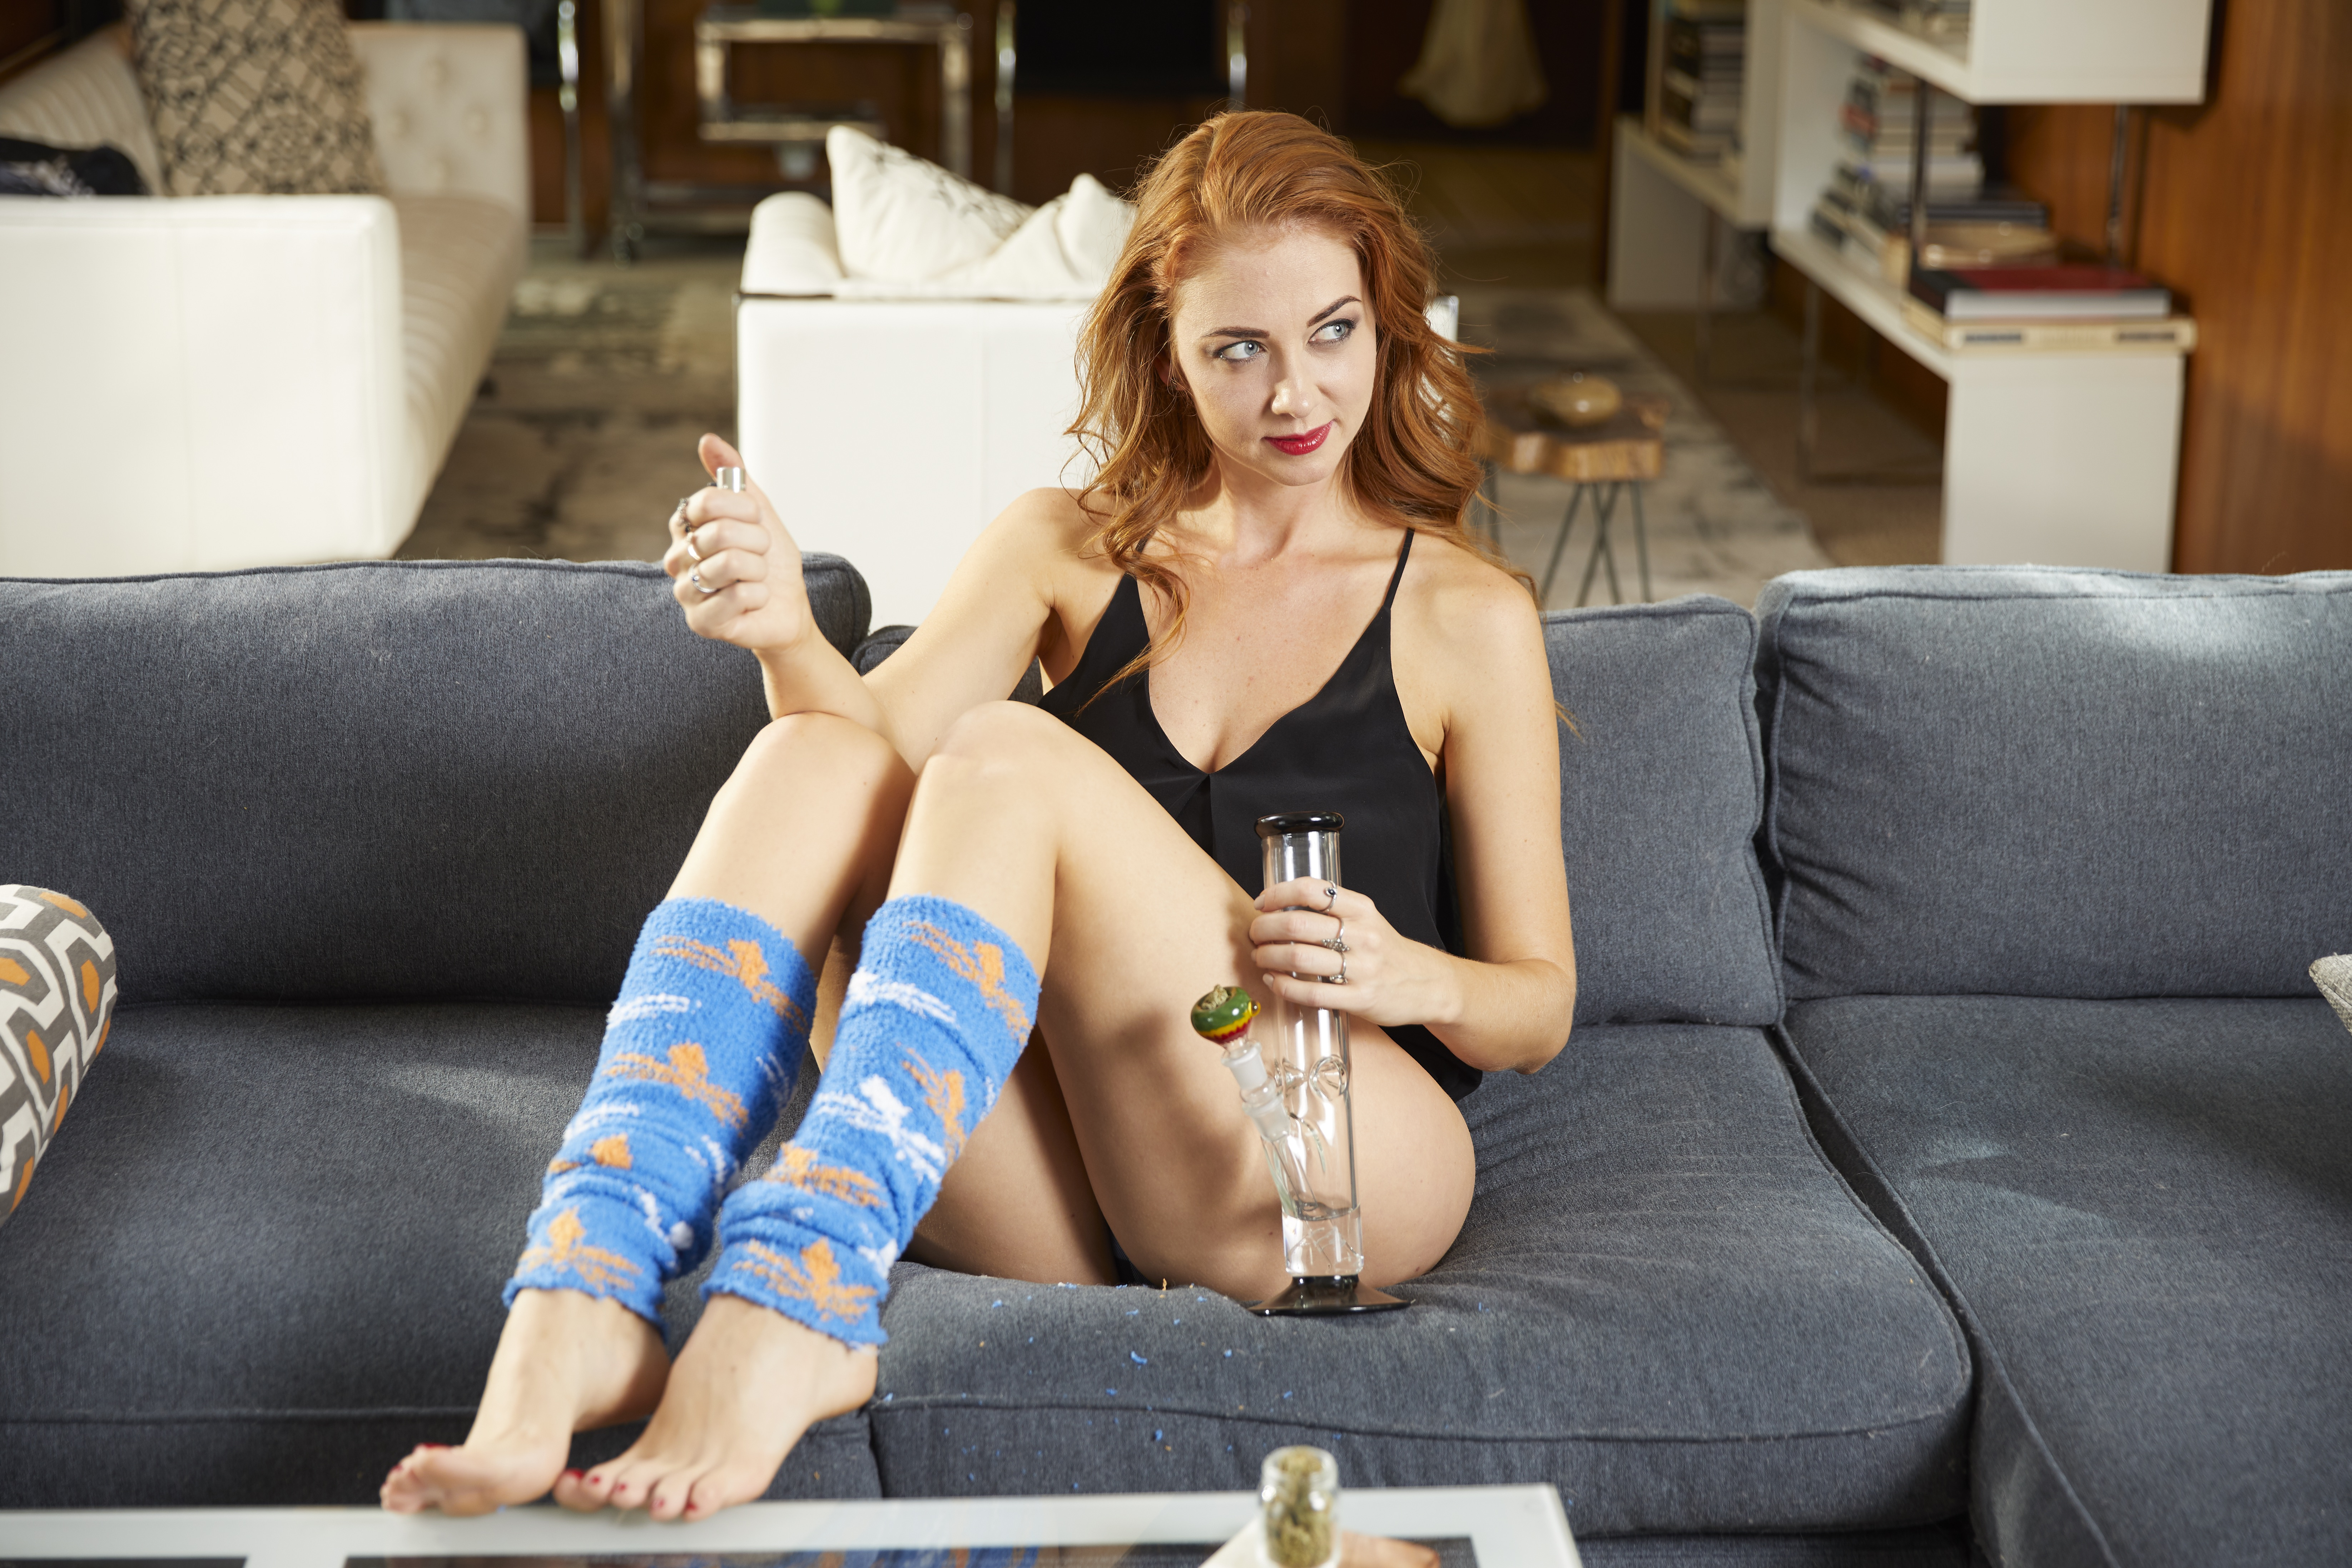 fun sox socks inessa on the couch getting high stoned